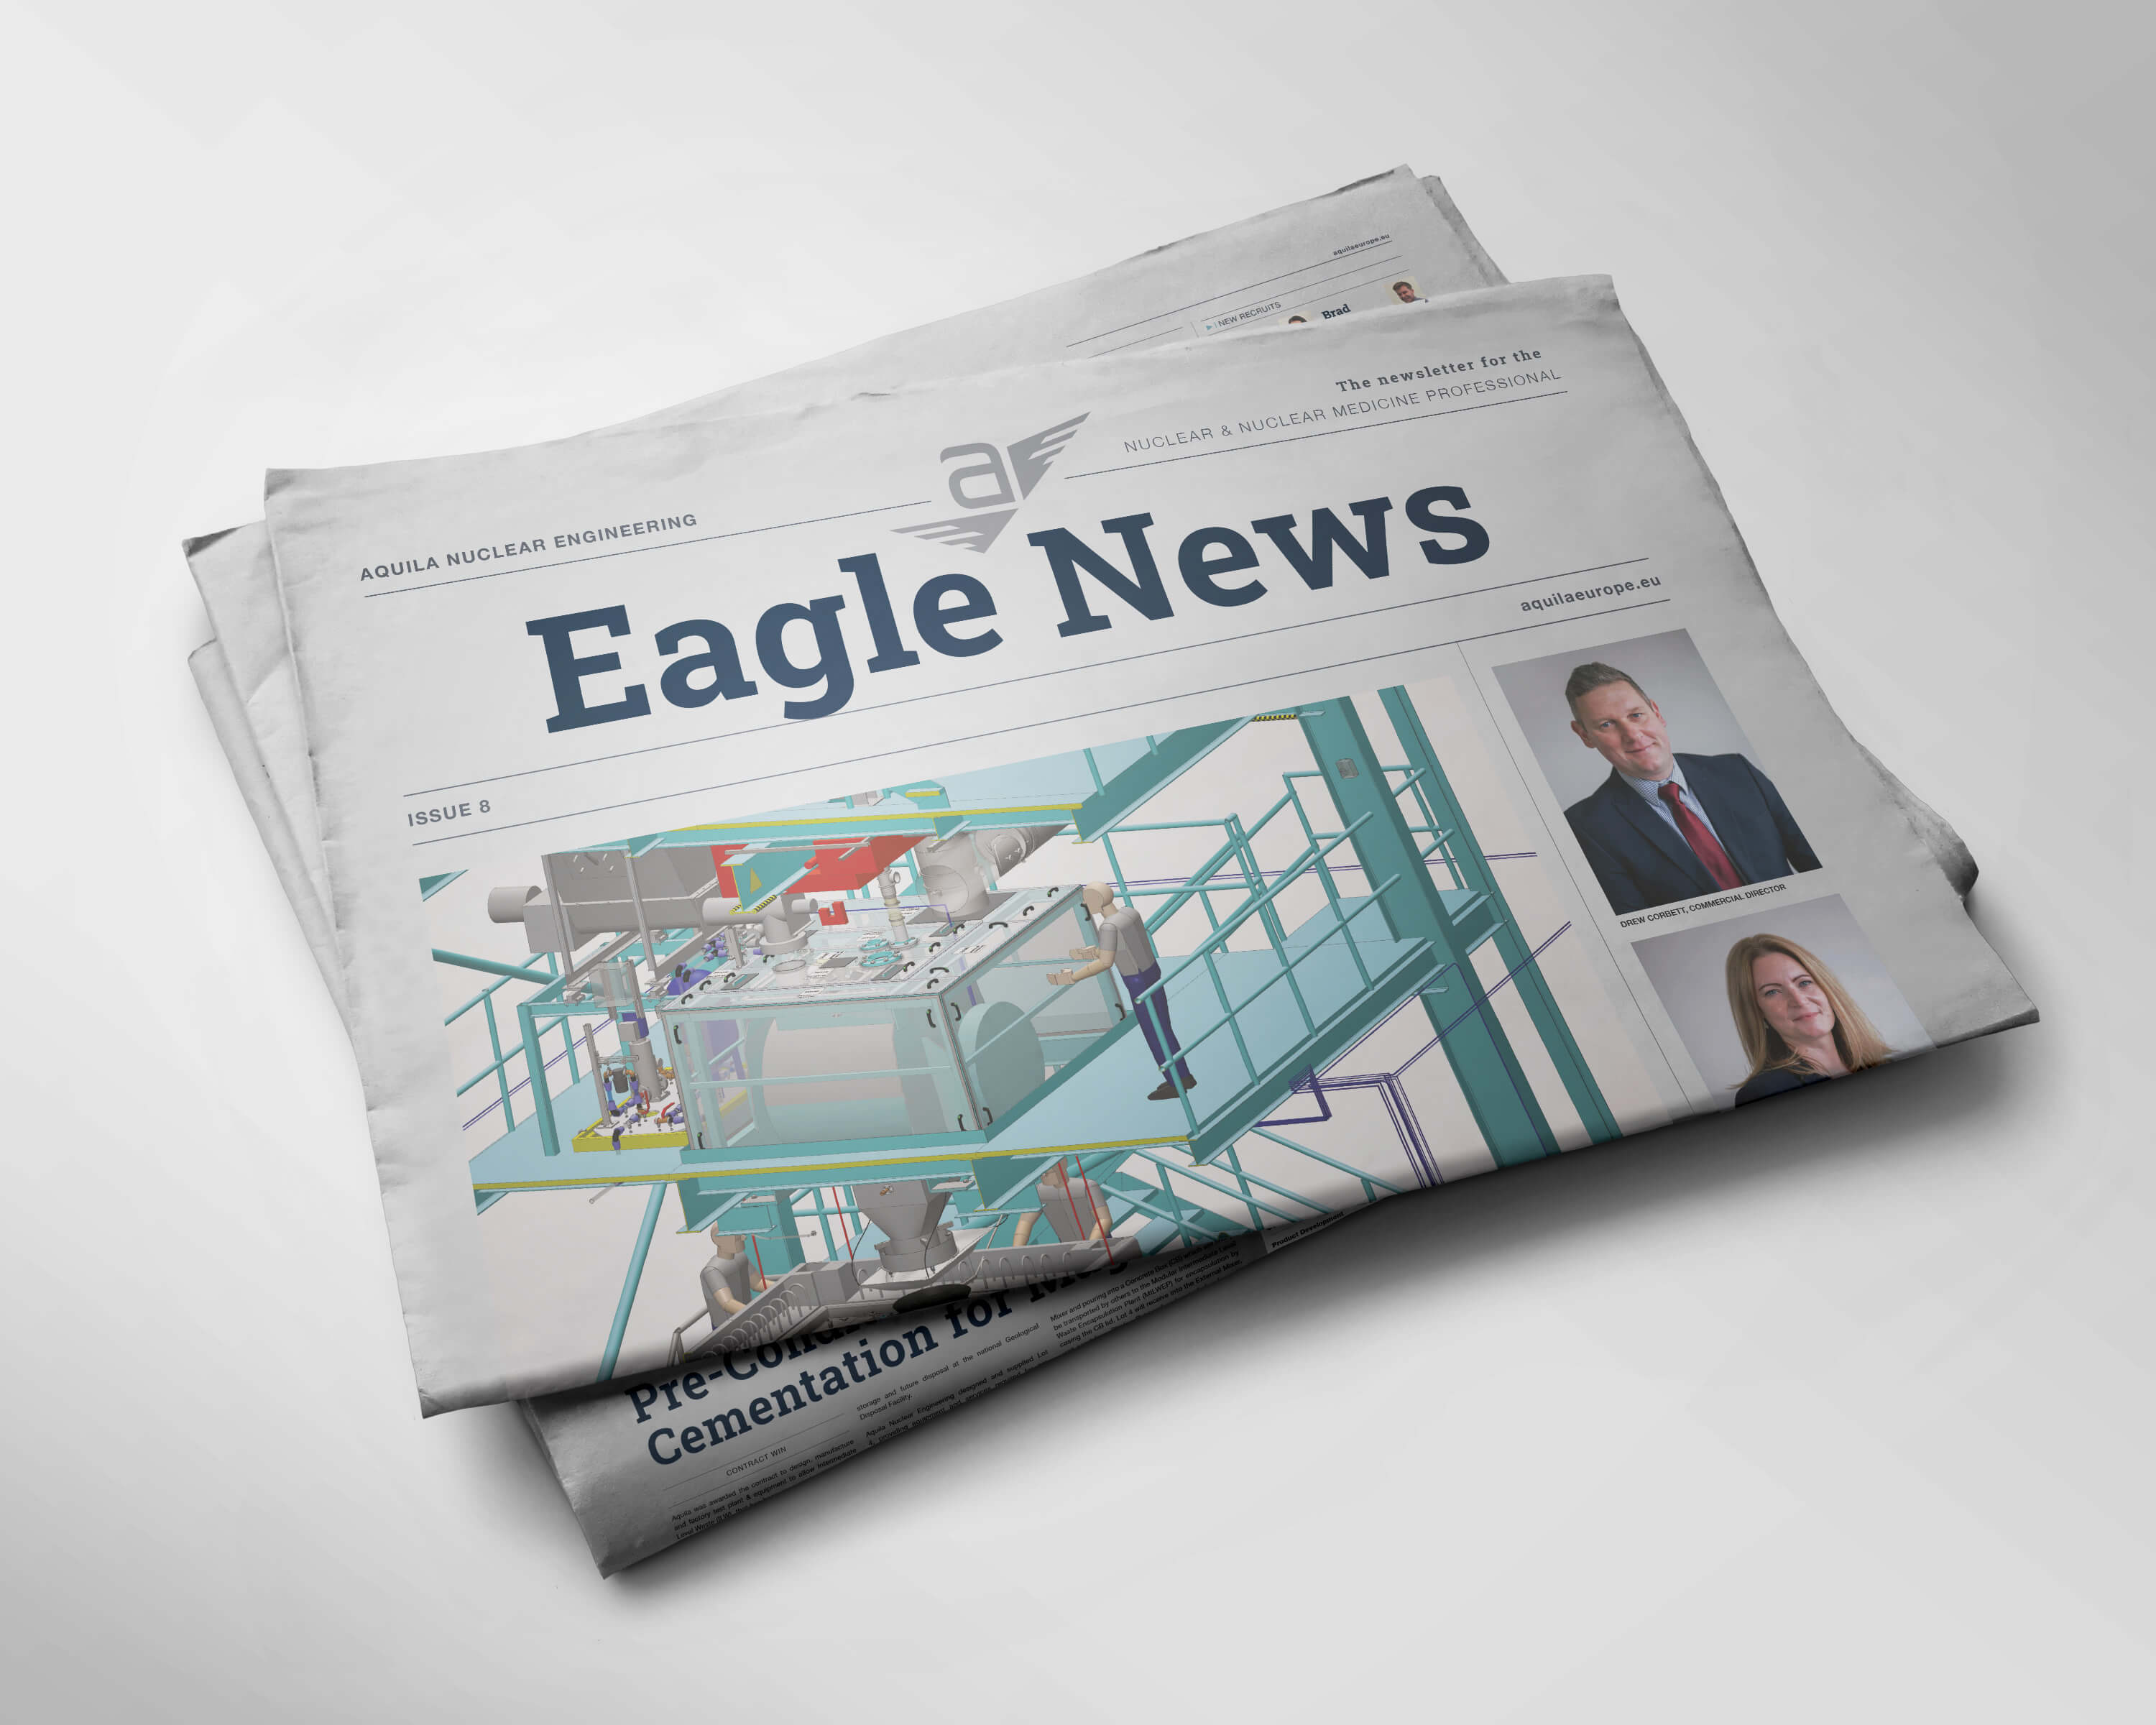 Aquila Nuclear Engineering Newspaper Newsletter